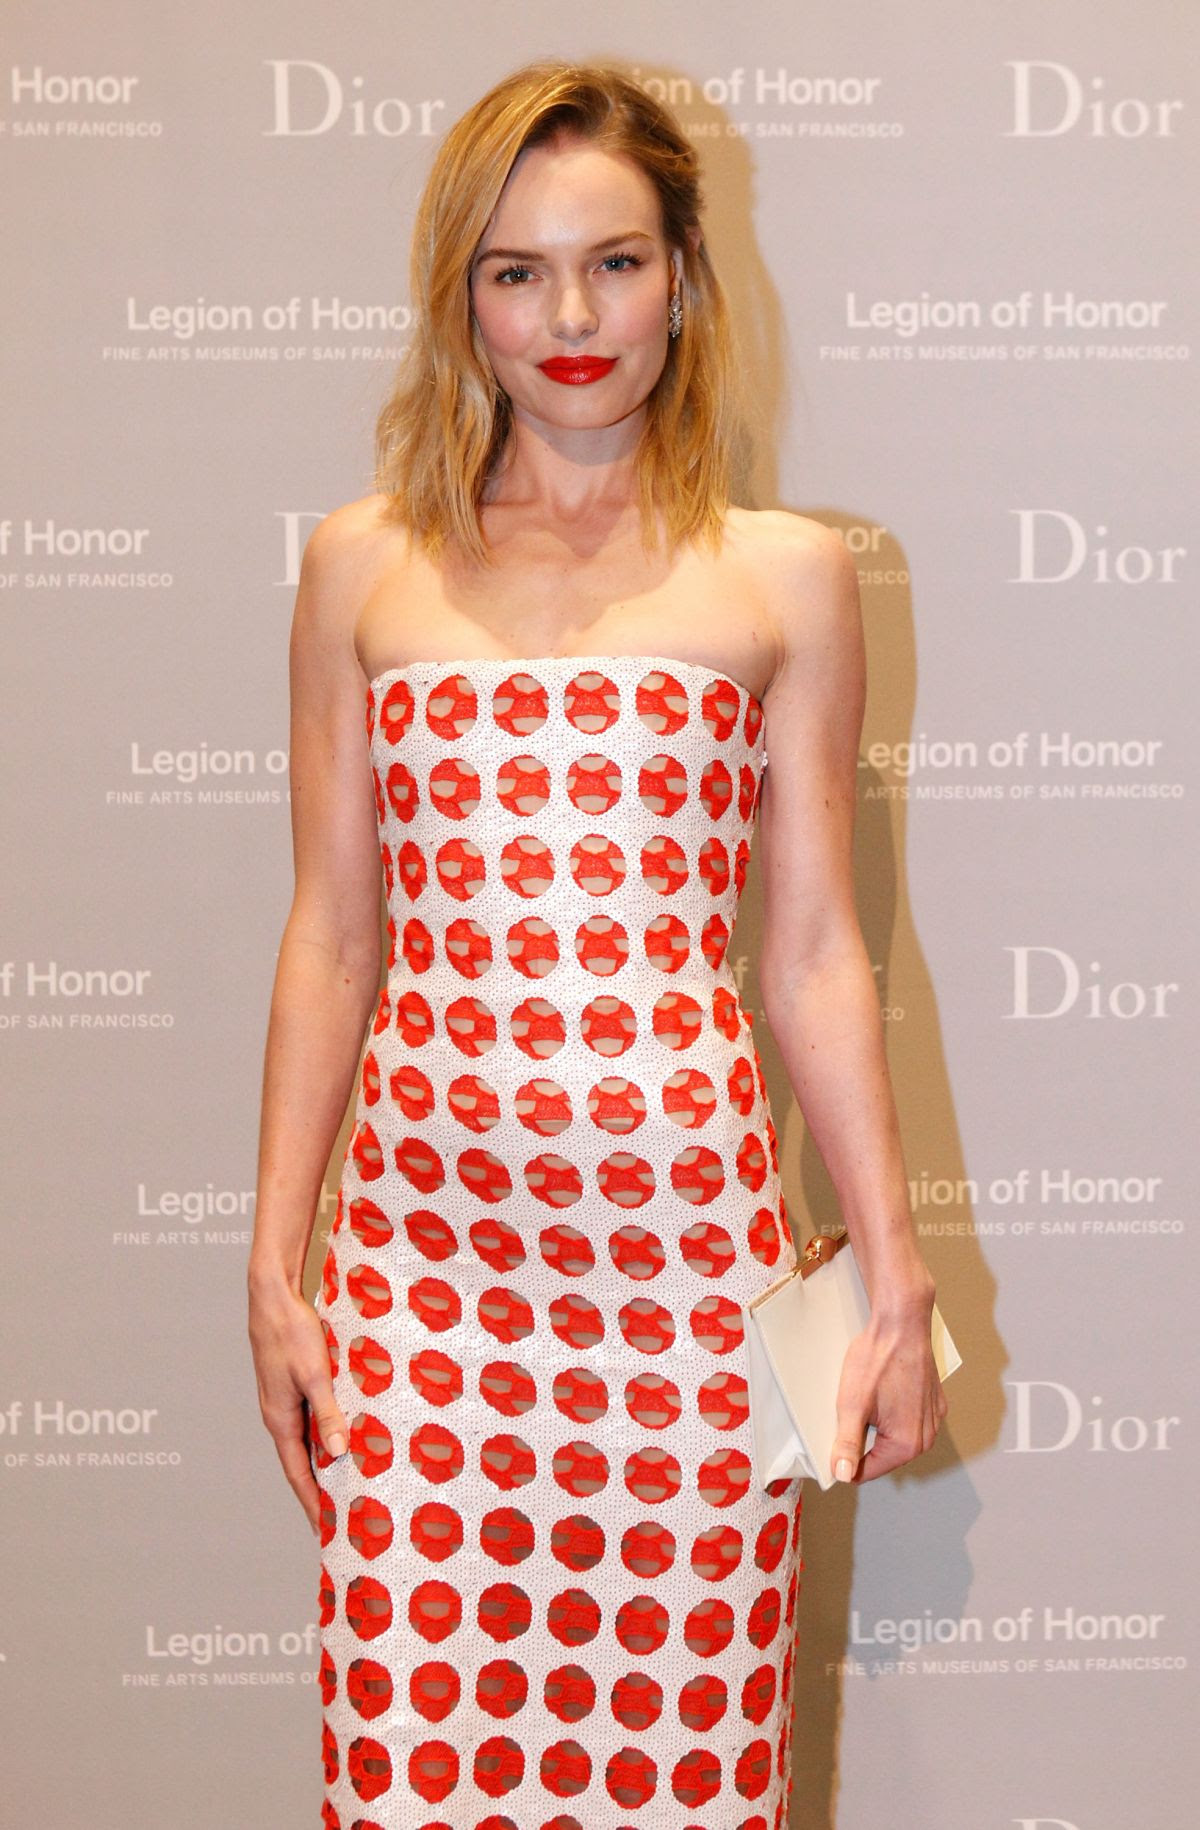 KATE BOSWORTH at 2015 Mid-winter Gala Presented by Dior in San Francisco